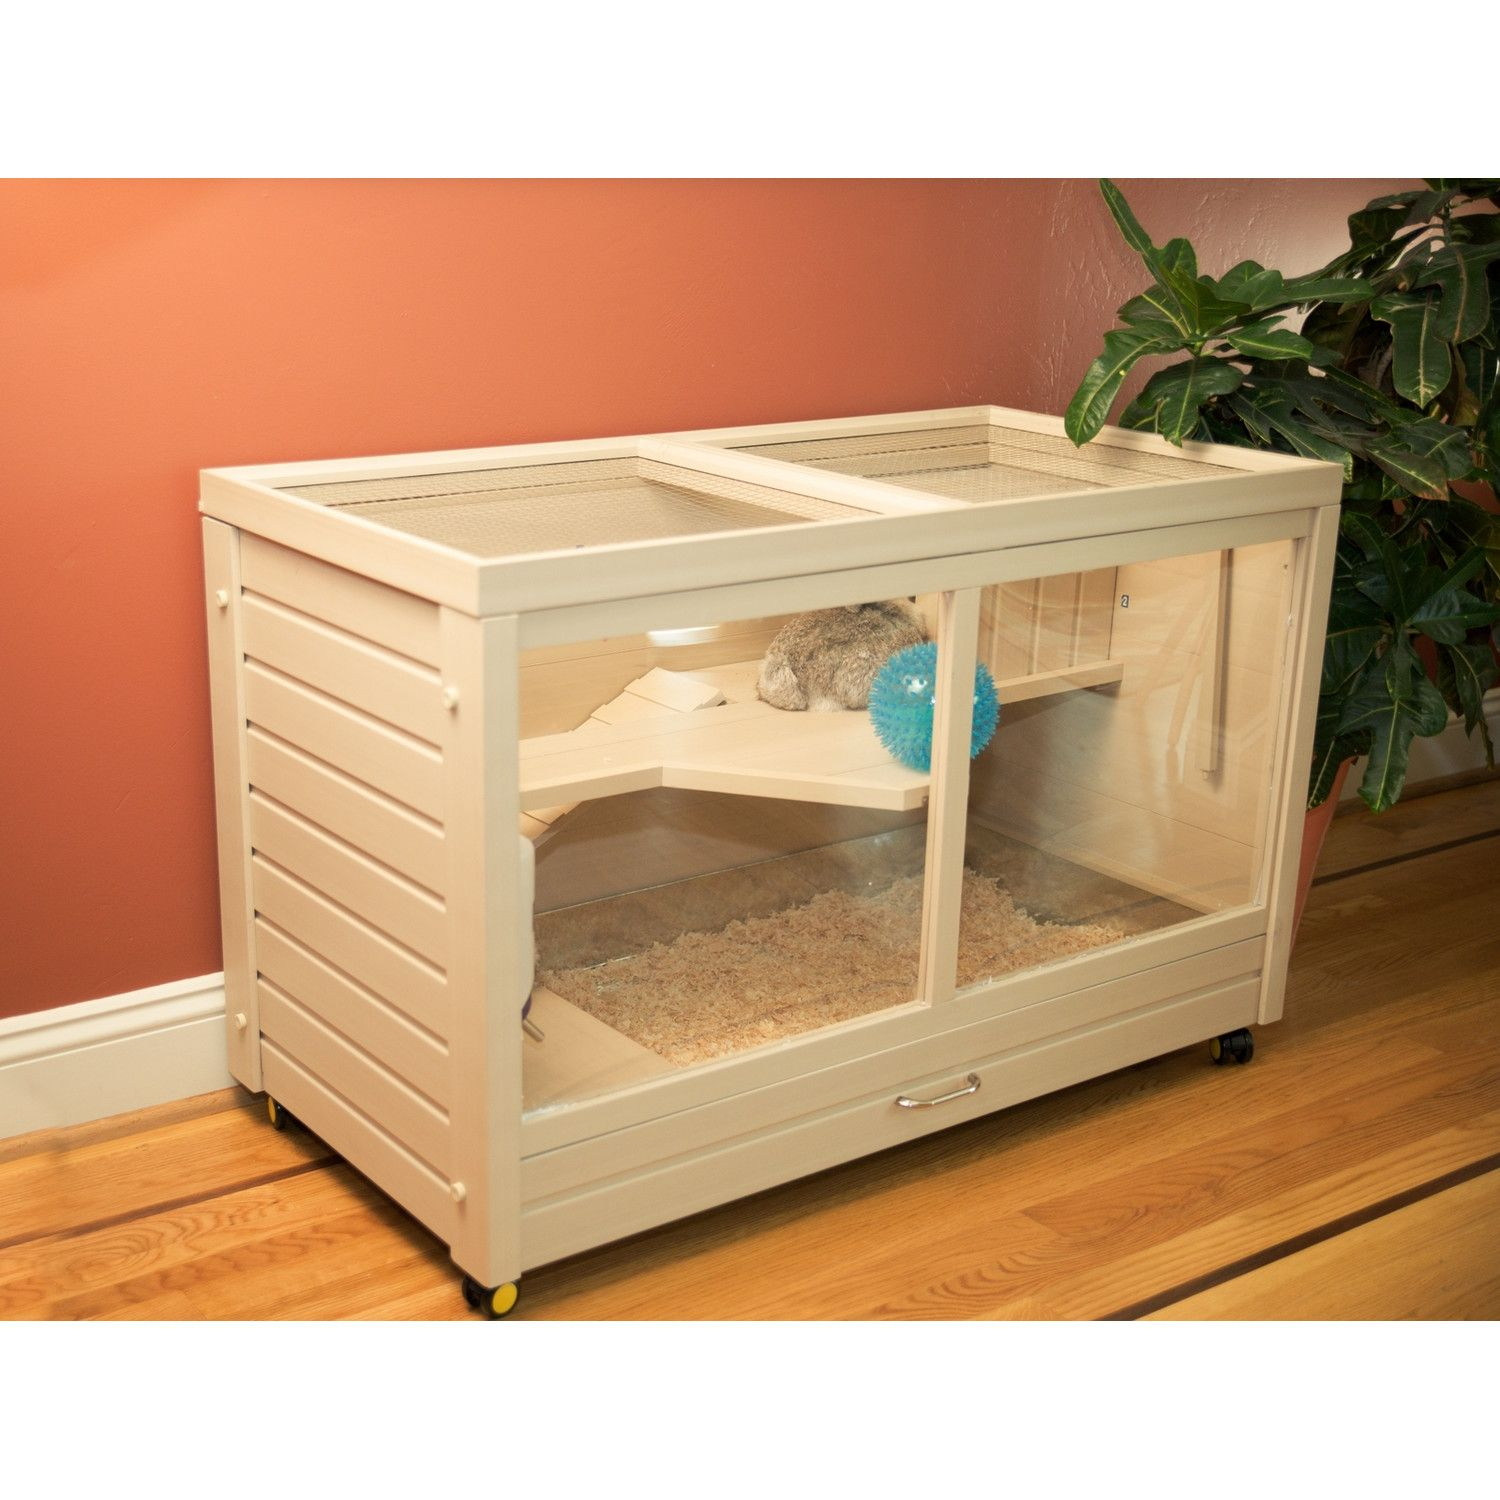 New Age Pet Park Avenue Indoor Small Animal Hutch Cute